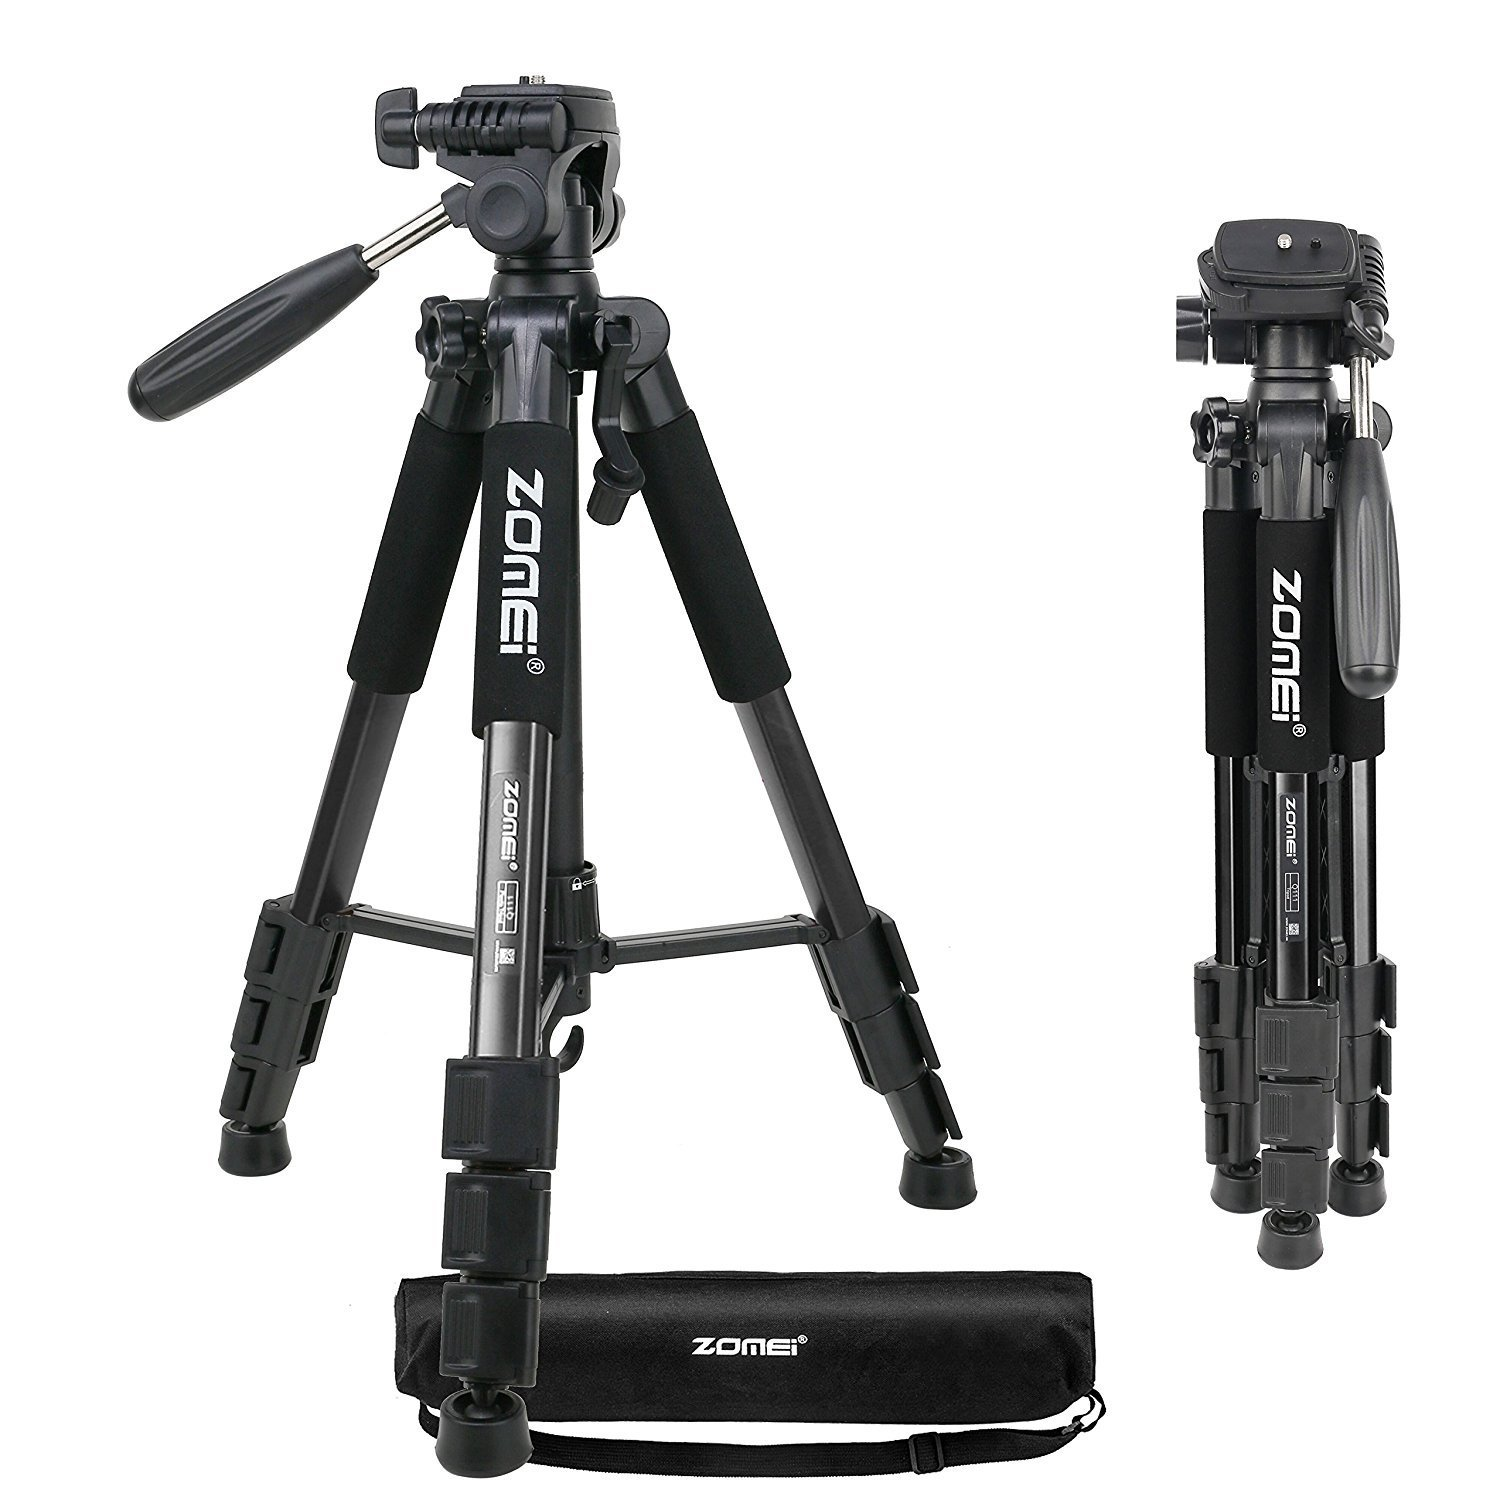 ZOMEI Q111 Portable Professional Light Weight Traveler Tripod with Pan Head for Camera DSLR DV Canon Nikon Sony Smartphone Black 3730 professional tripod for nikon canon sony dslr camera aluminum tripod with pan head gimbal stand for gopro hero dv cameras